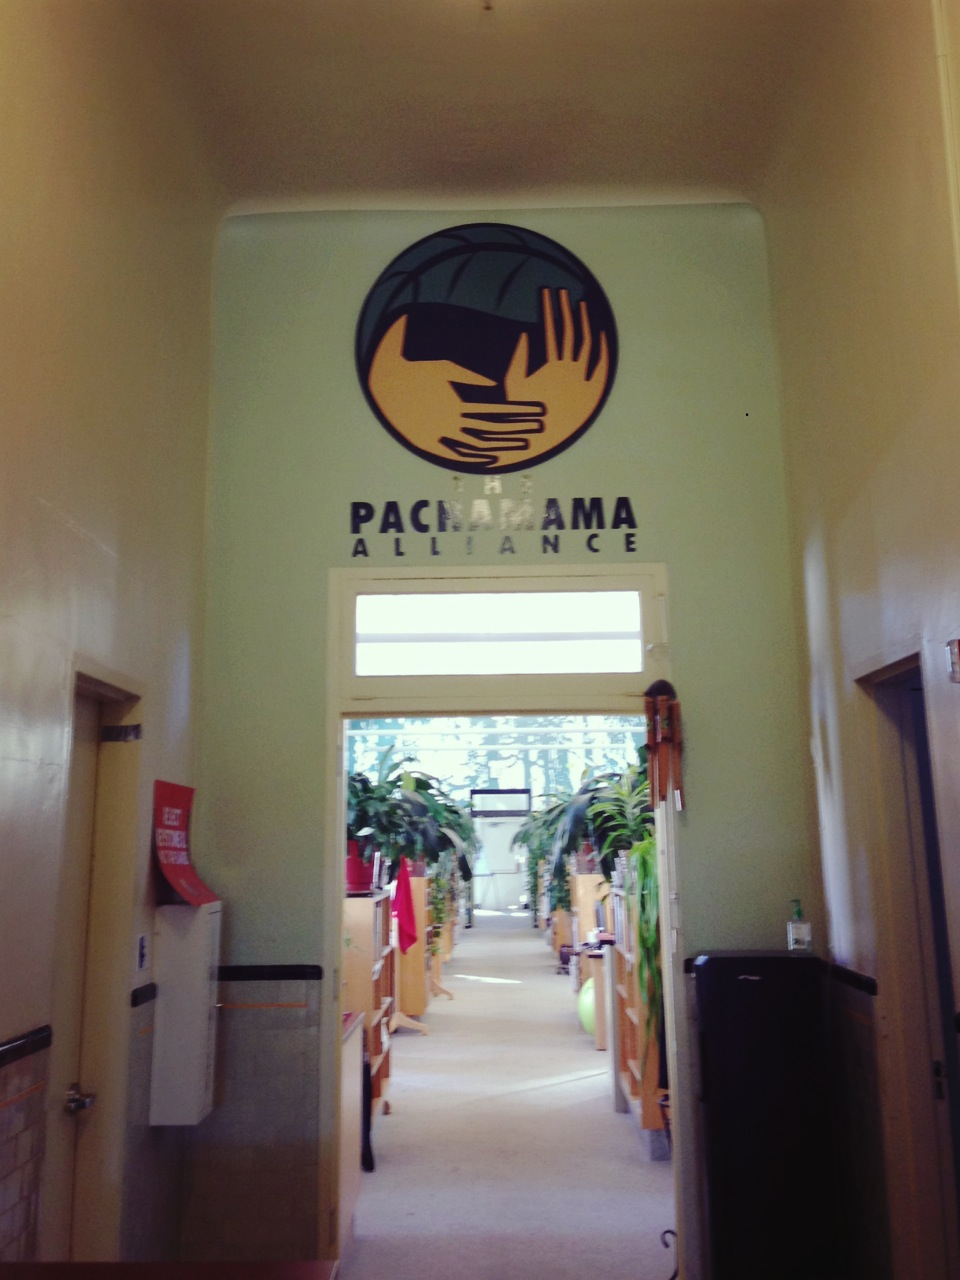 Pachamama Alliance' Office in San Francisco